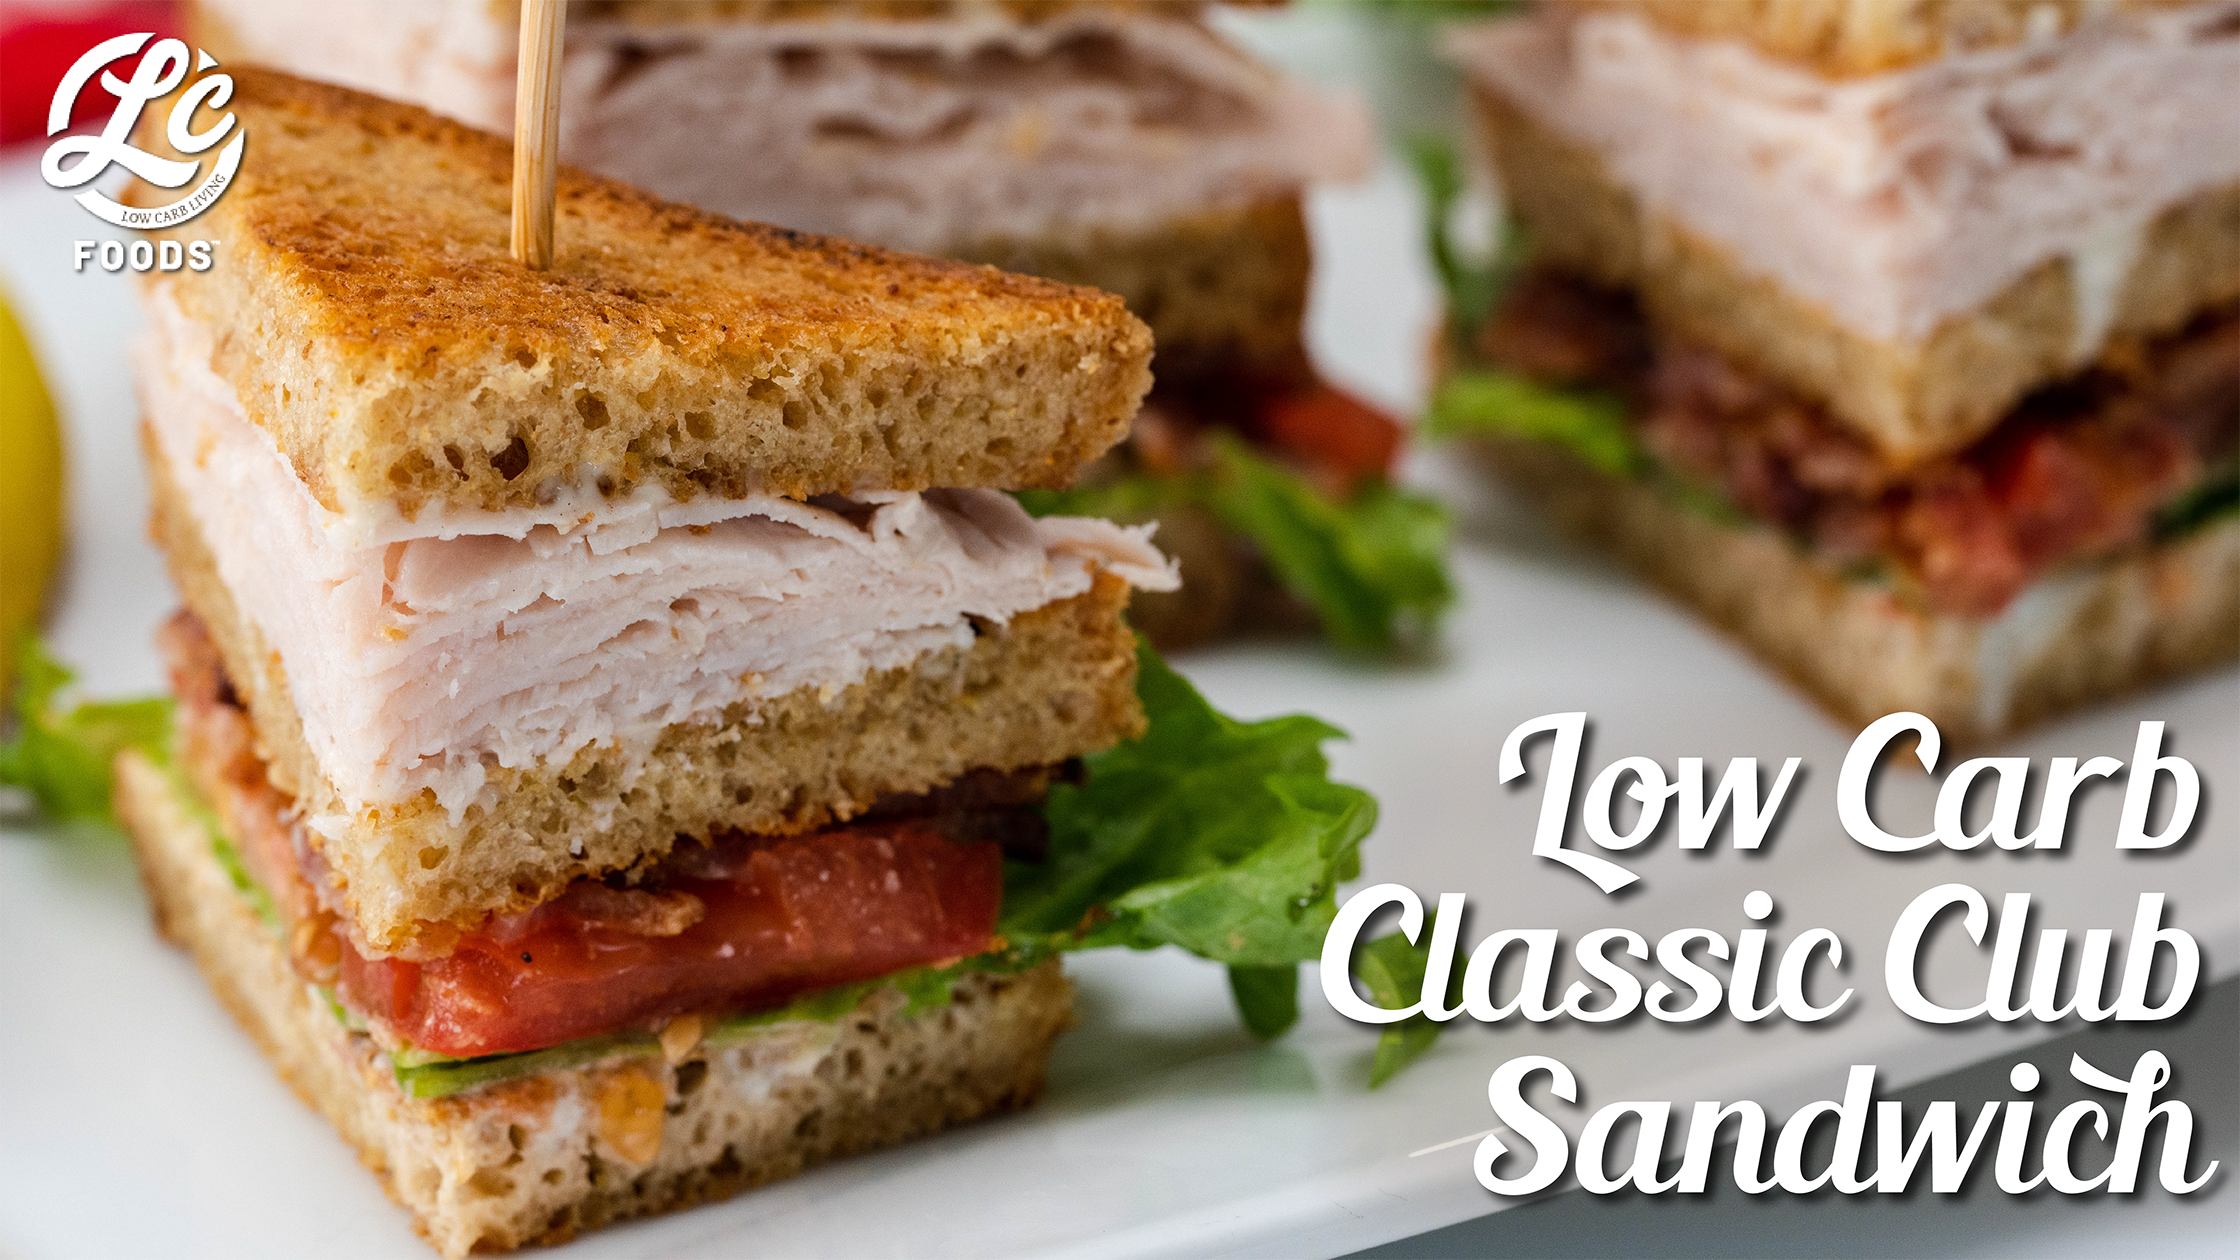 Thumbnail for Low Carb Classic Club Sandwich